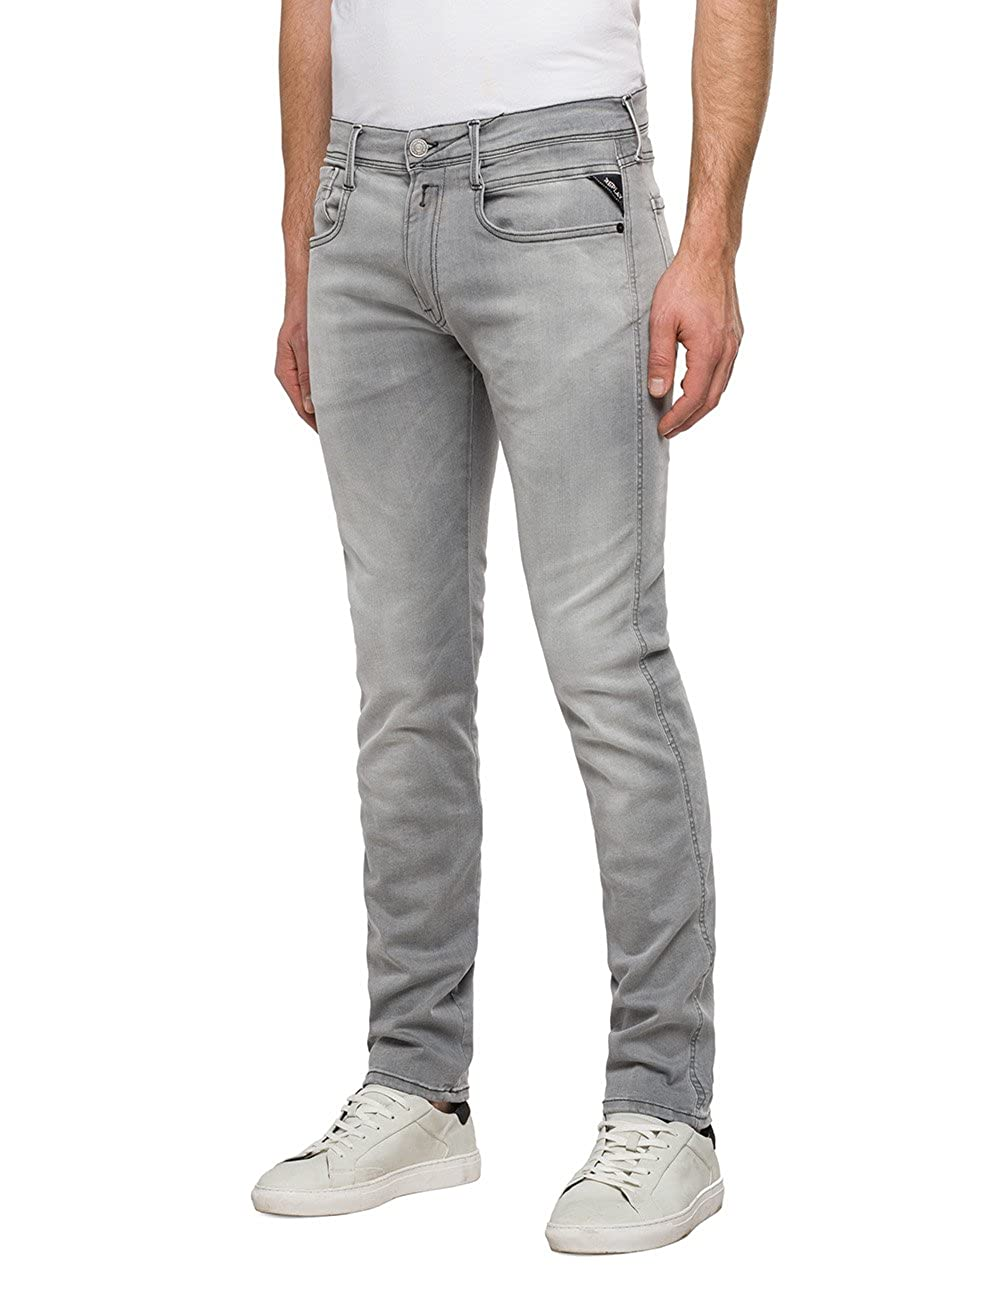 REPLAY Anbass Anbass REPLAY Hyperflex, Jeans Slim Uomo 571cb4